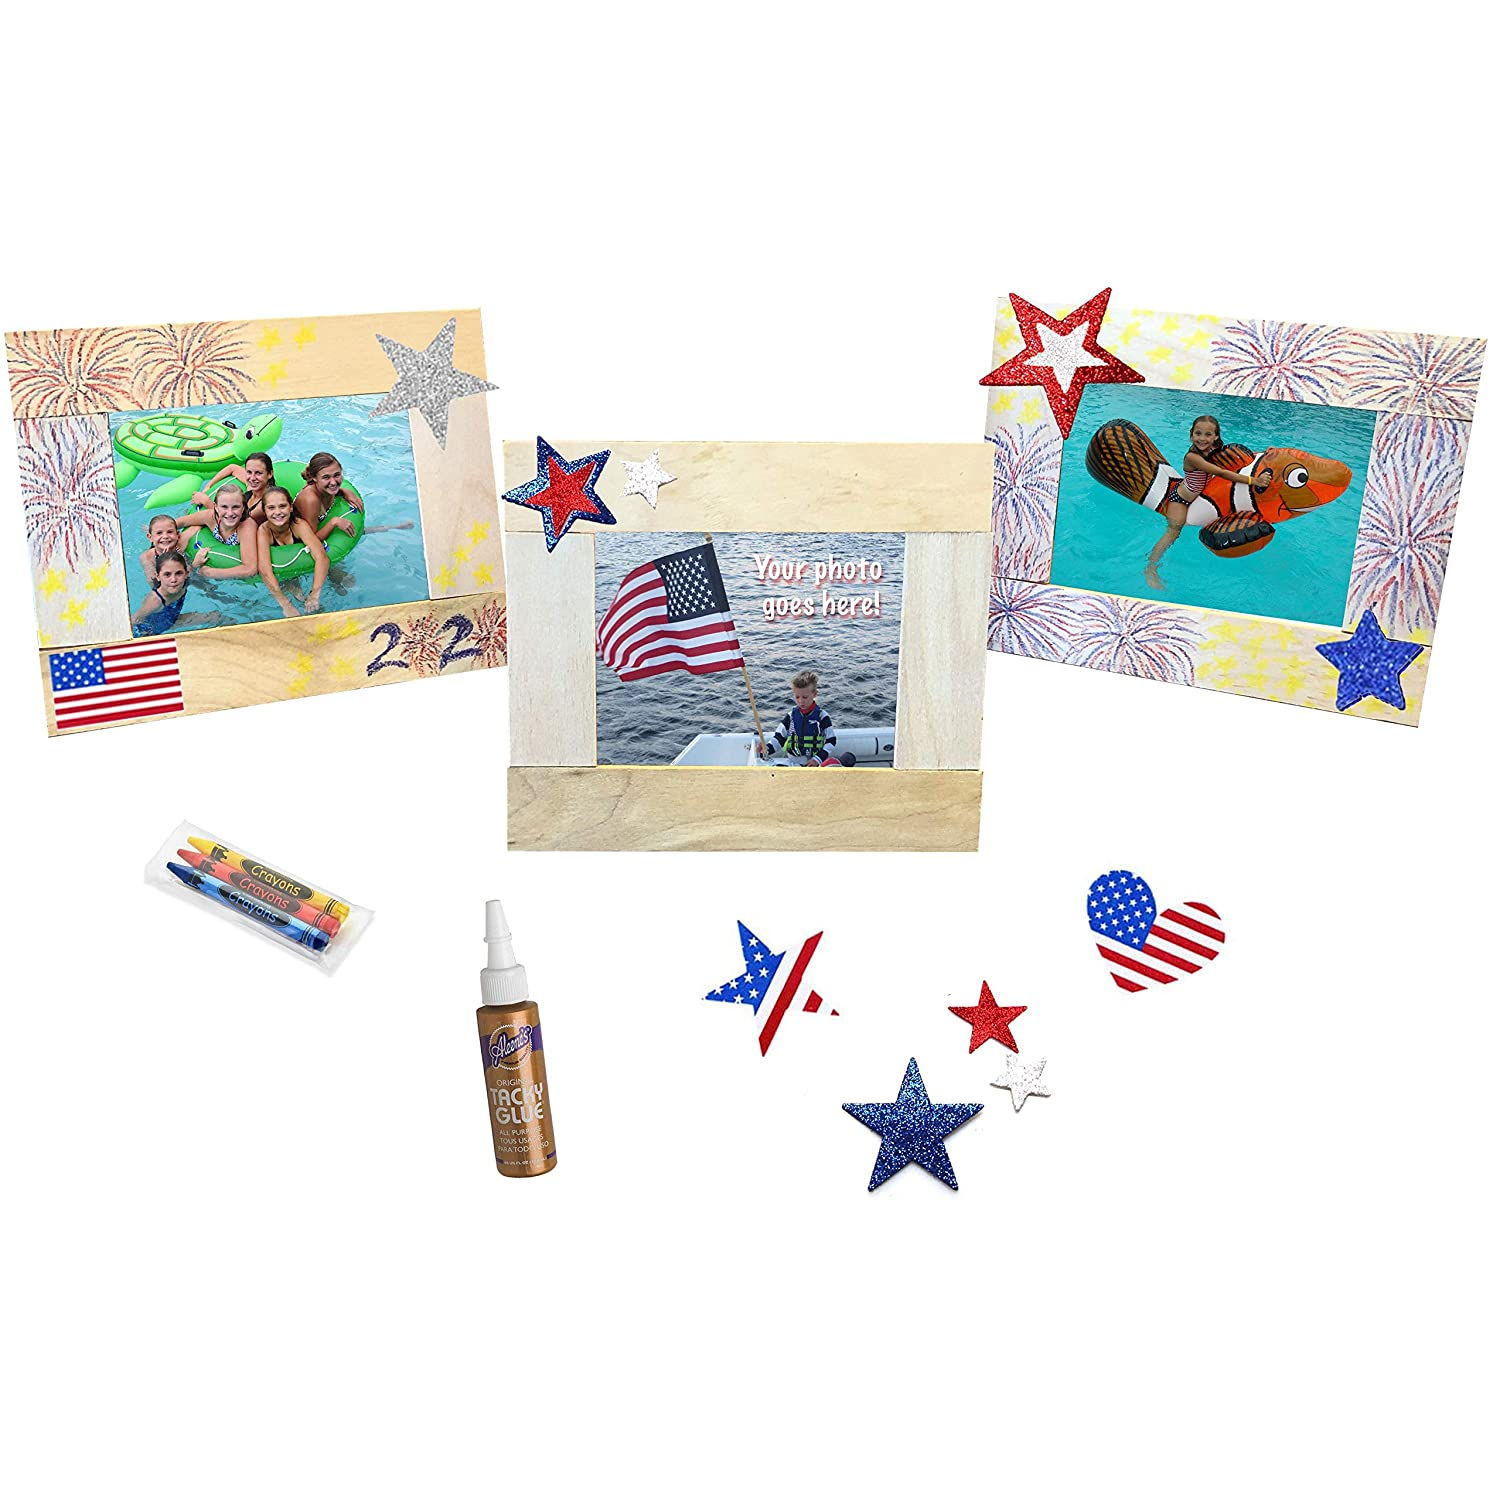 Picture Frame Kit Complete with Instructions Made in USA from Recycled Materials Perfect Stix Krafty Kitz Wooden Craft Stick Kit for Kids